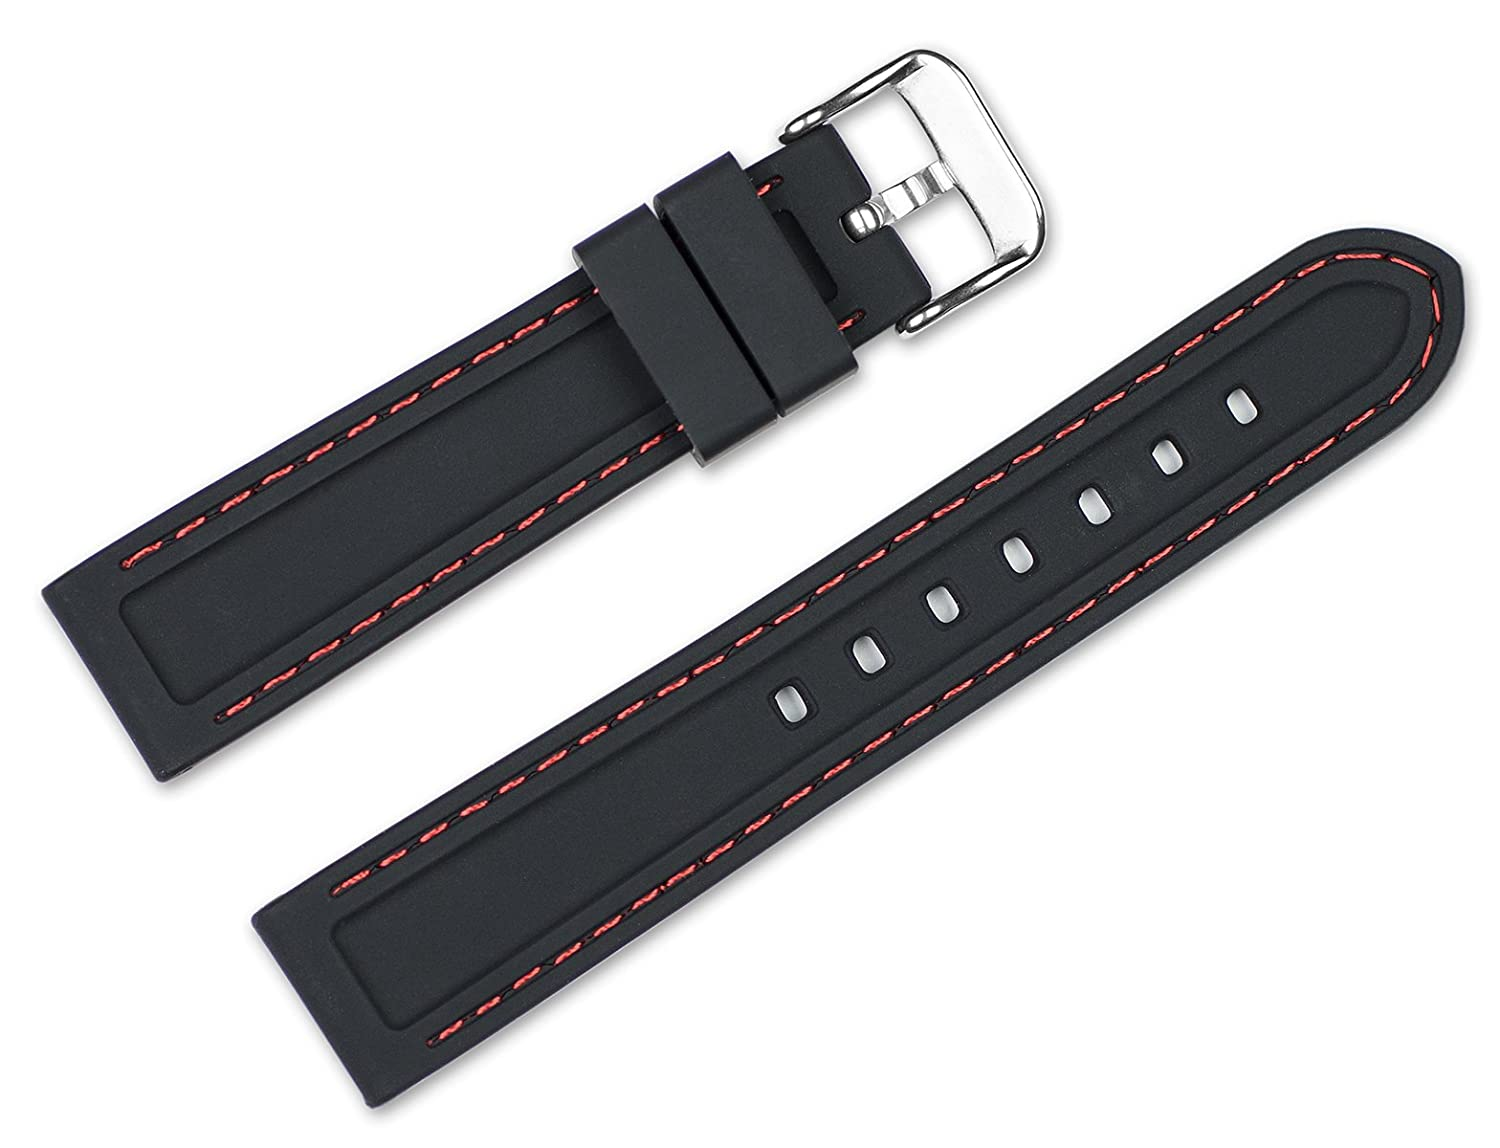 d7aa9499f12 24mm Replacement Rubber Watch Band - Silicone Rubber - Black w red  stitching Watch Strap